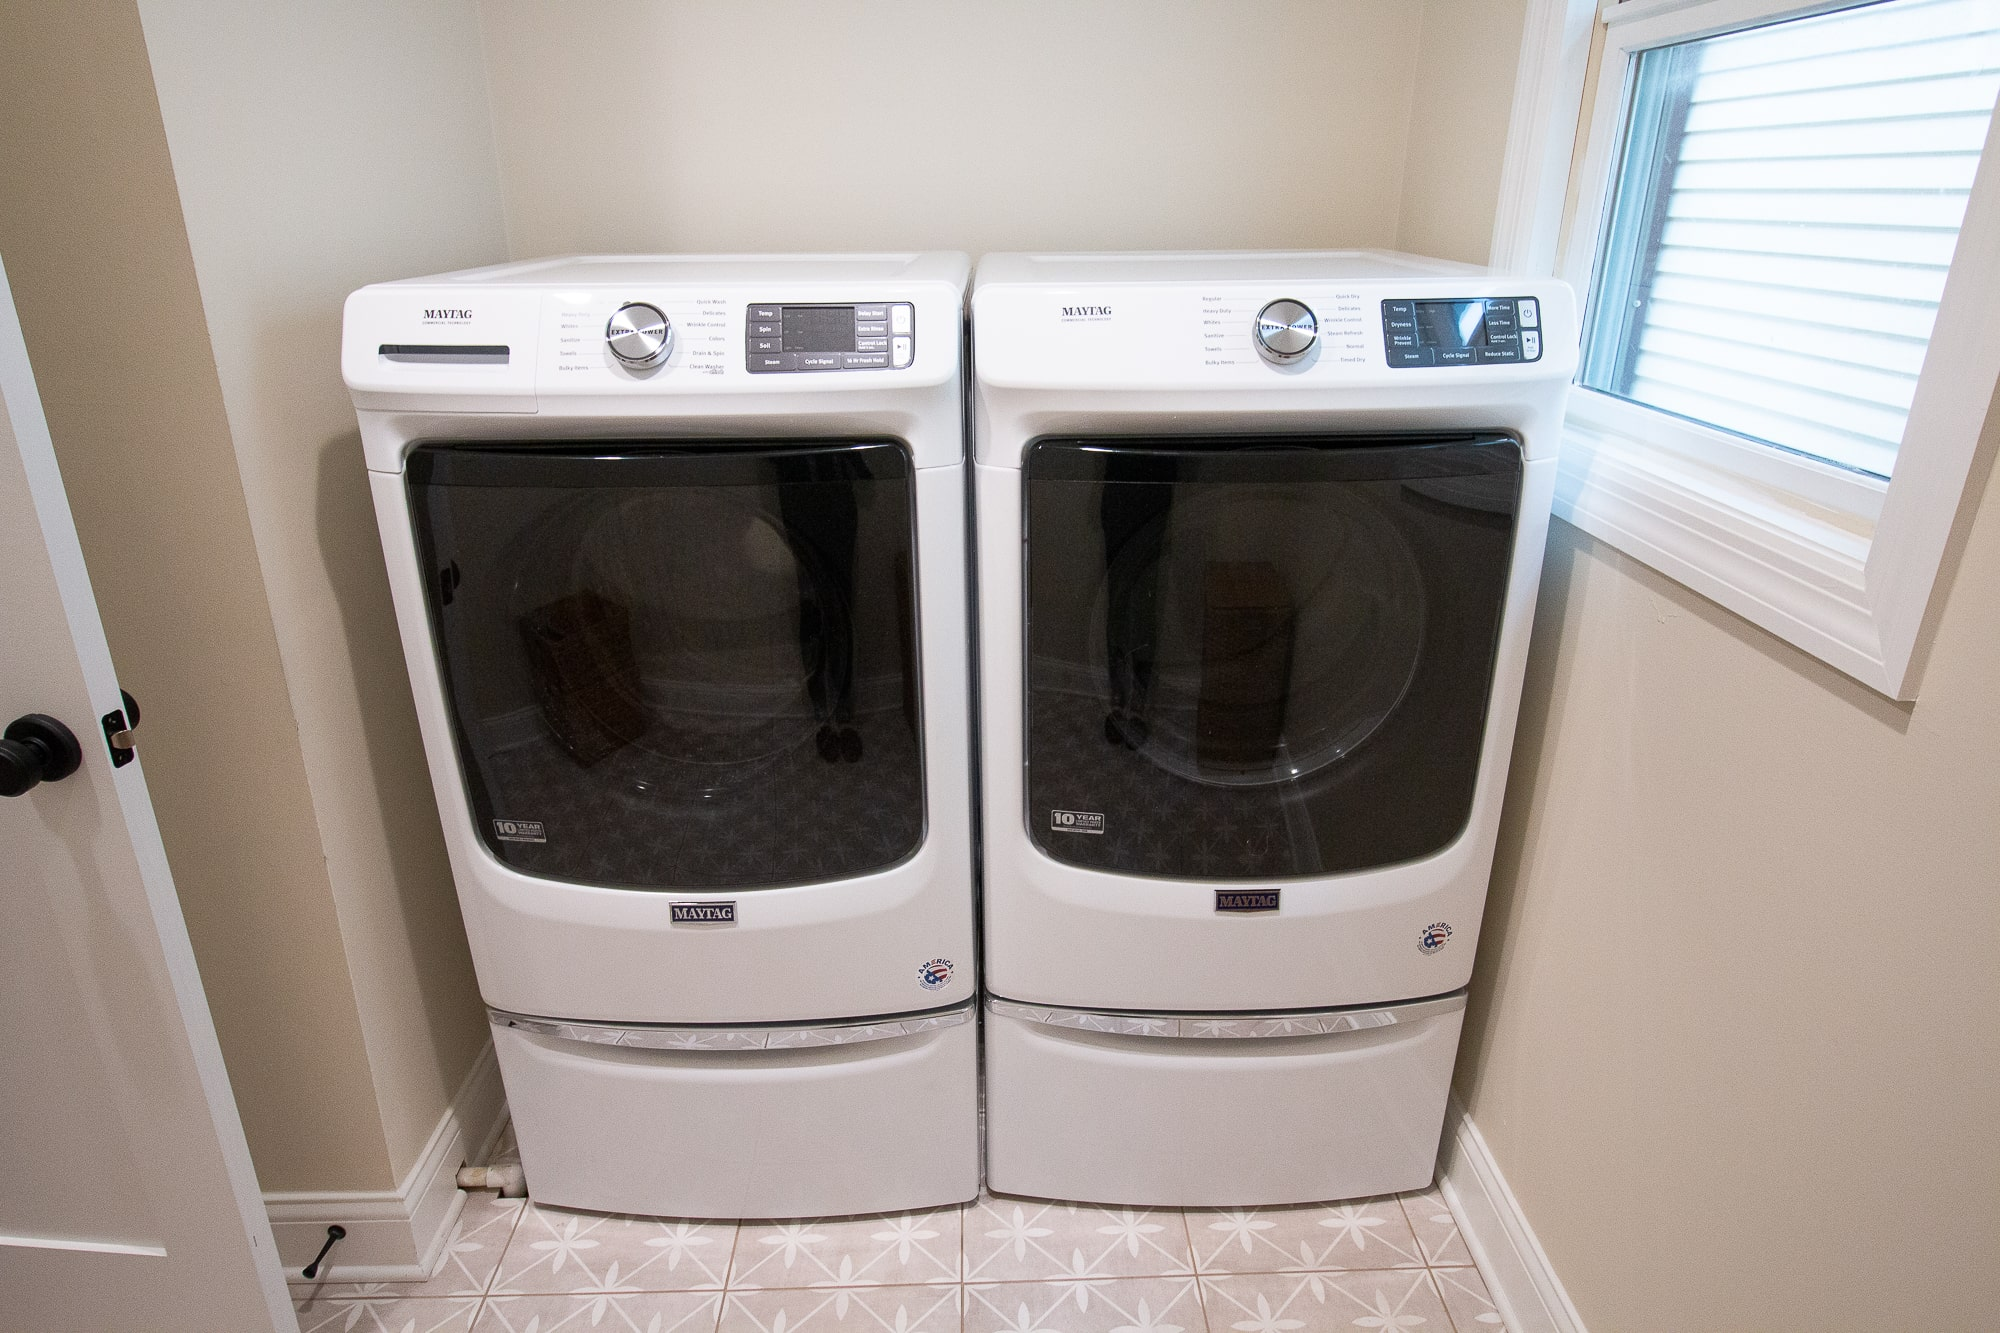 Our new washer and dryer